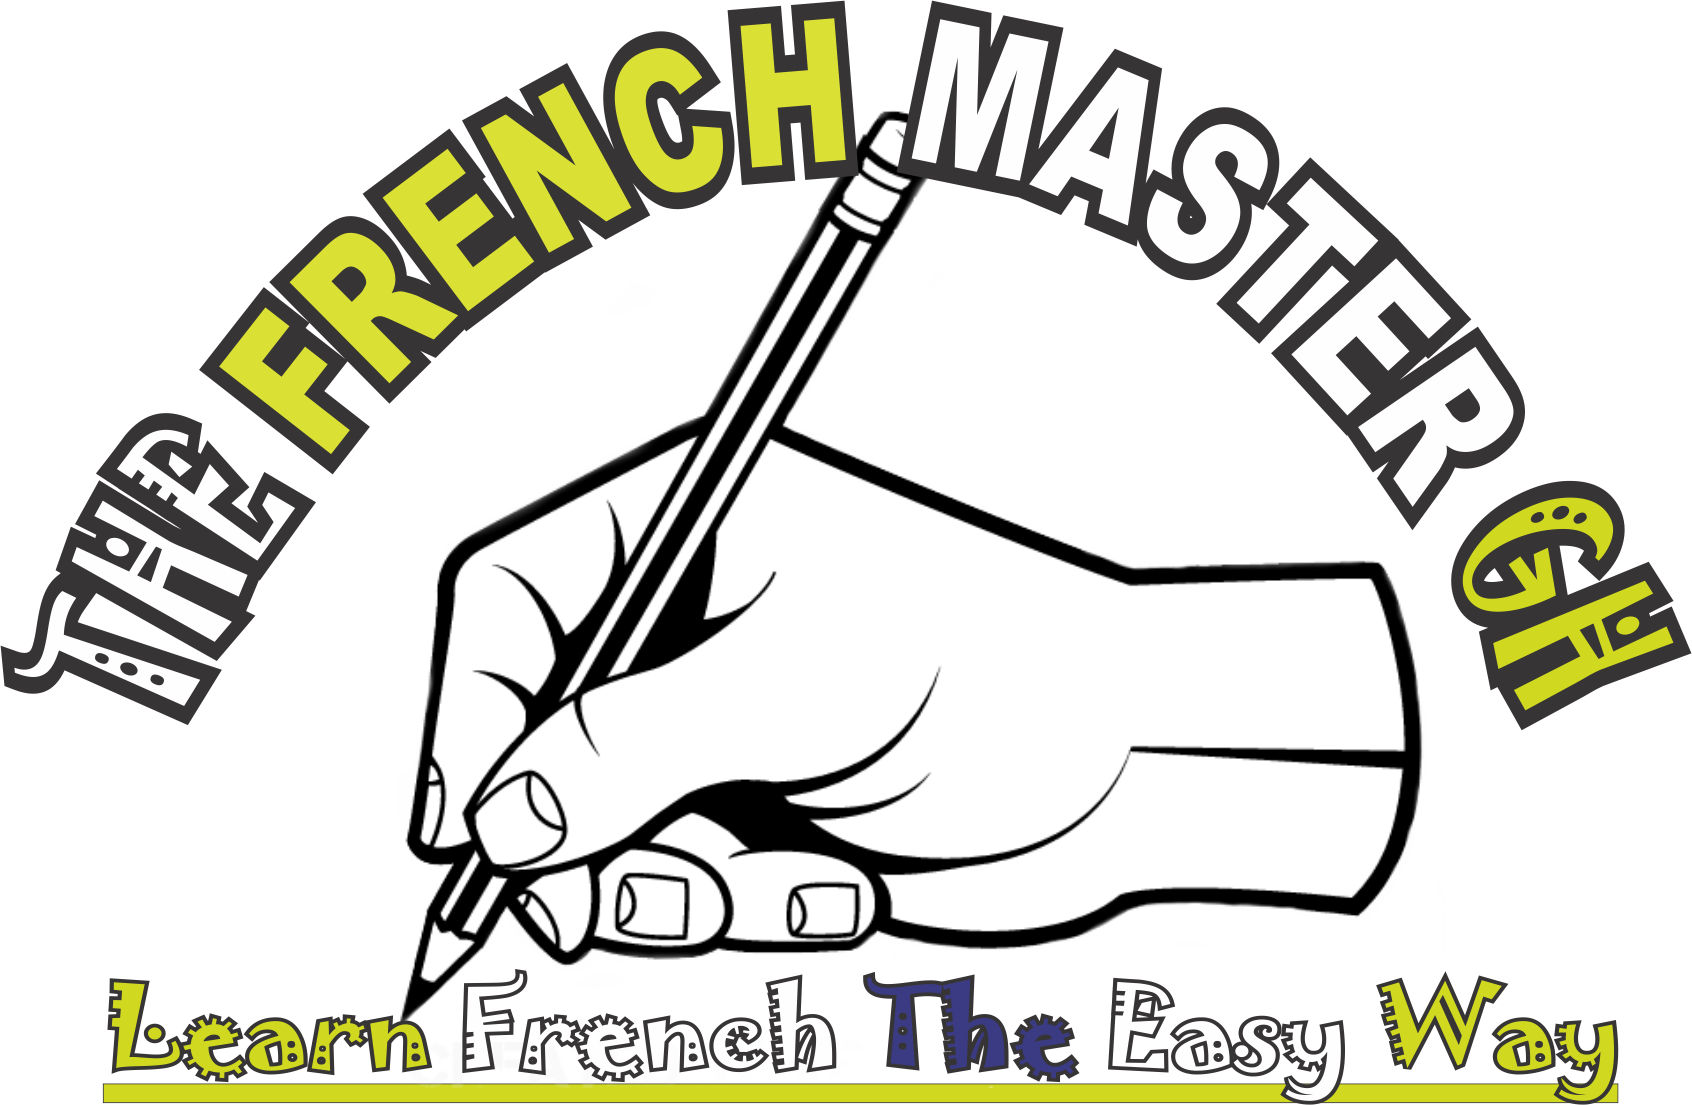 Dictionary clipart french dictionary. Exercises archives the master